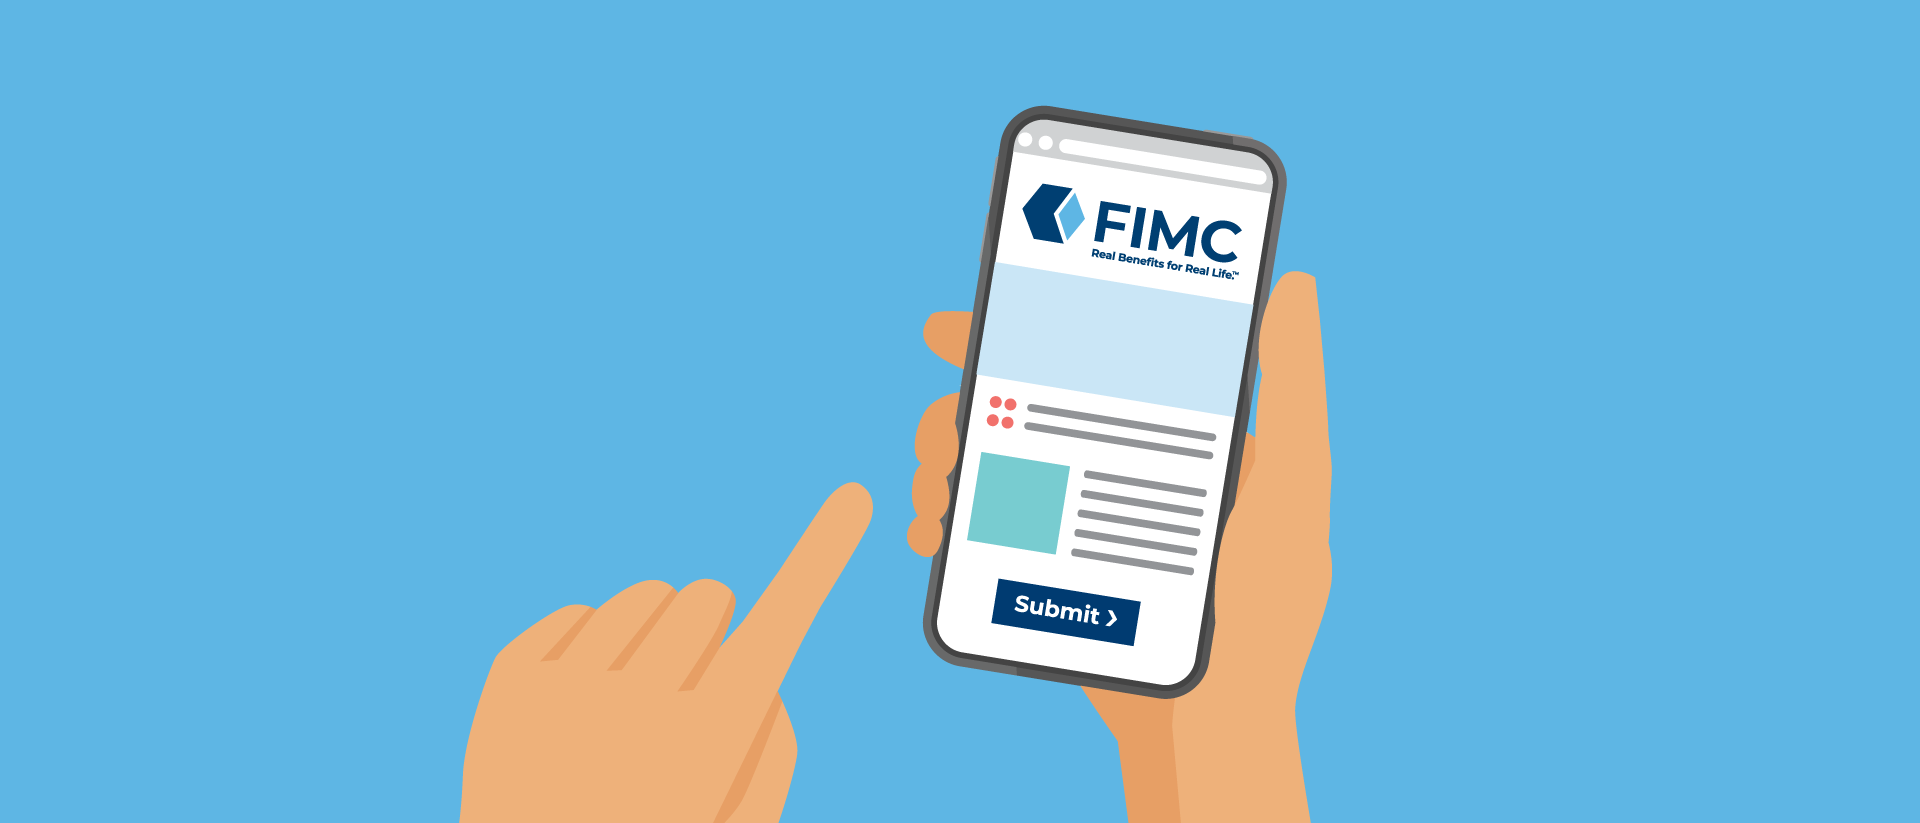 Illustration Design and Video Production for FIMC Insurance